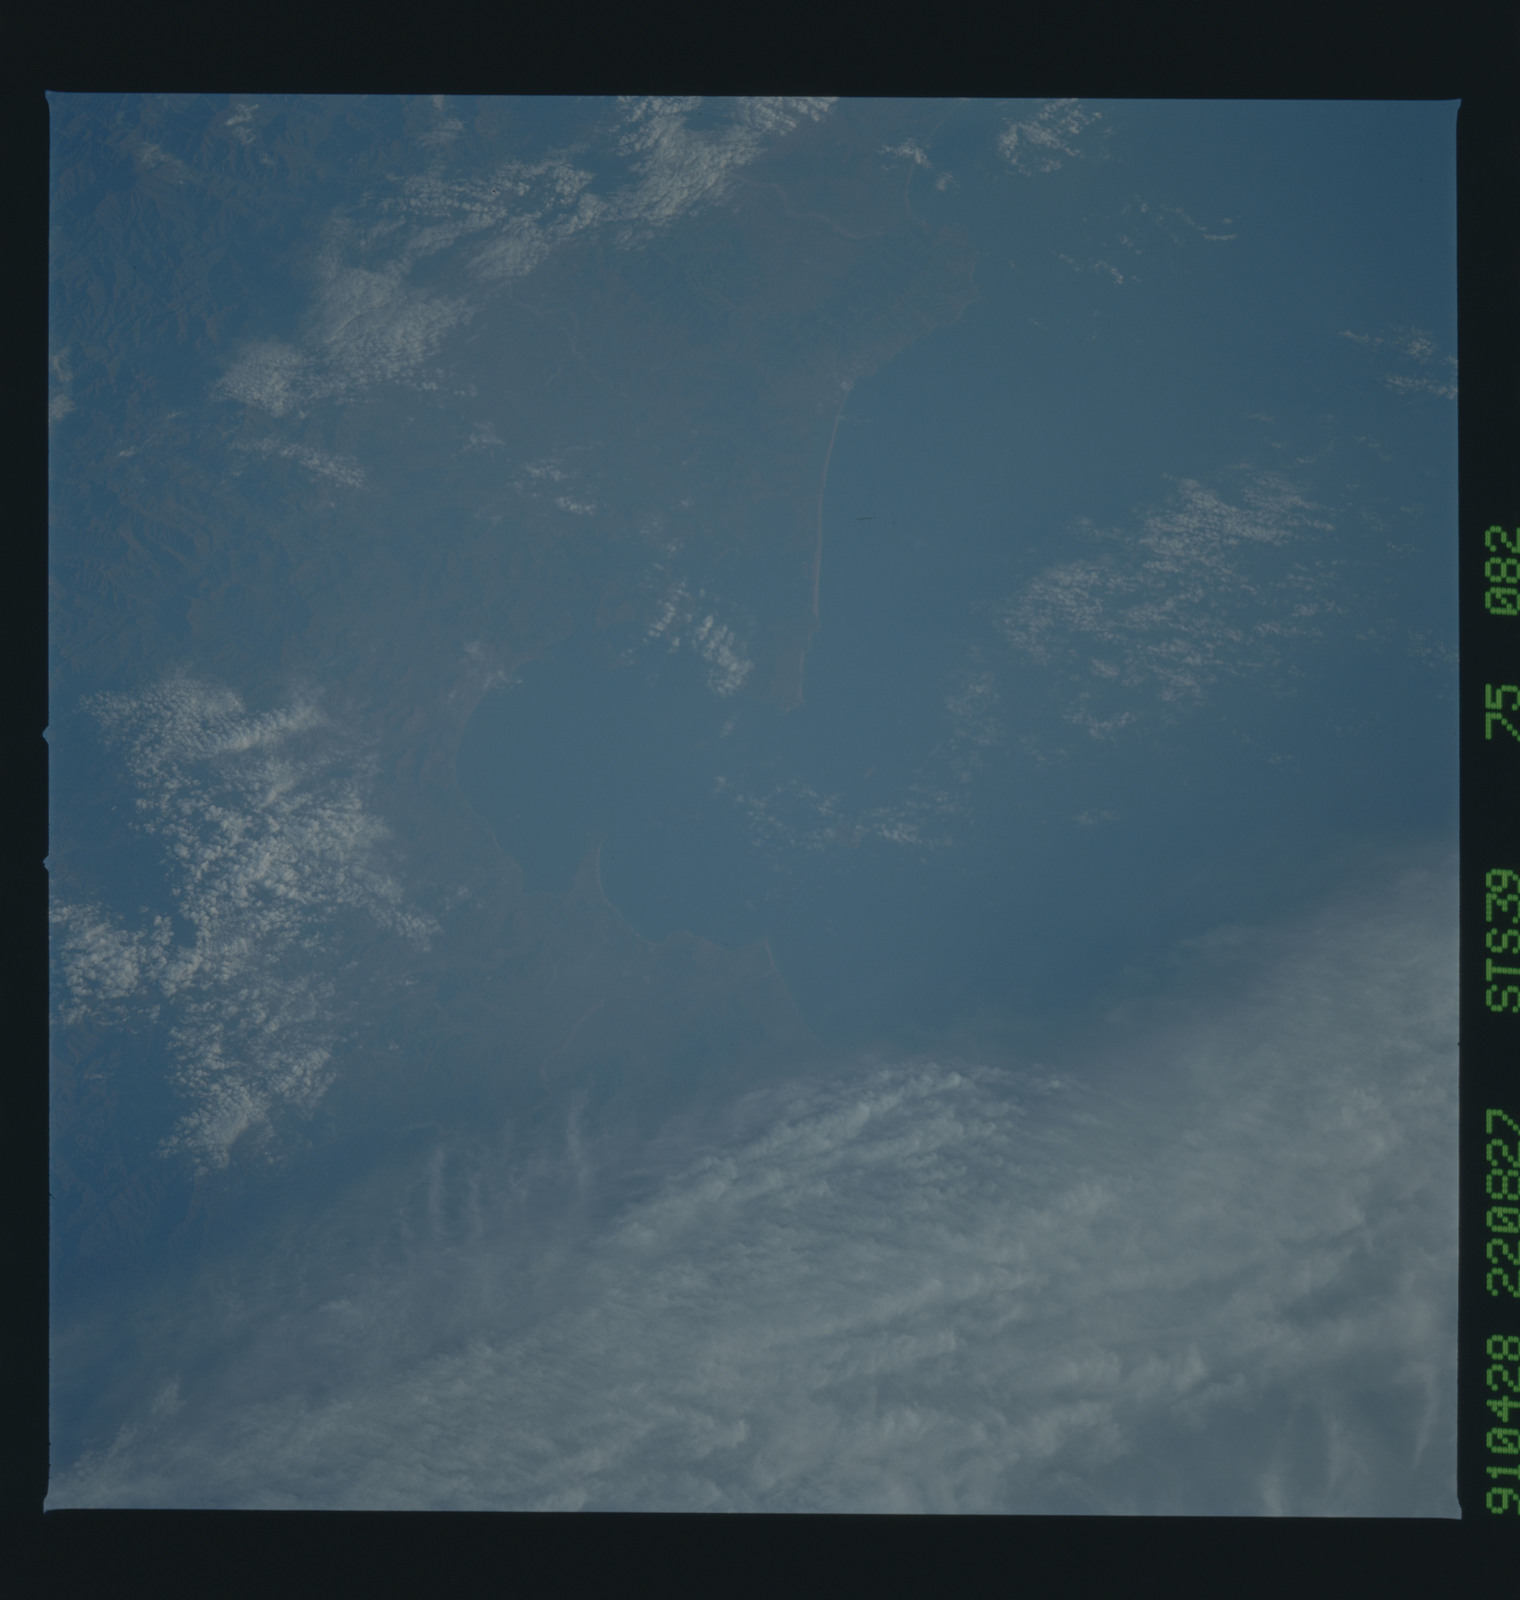 S39-75-082 - STS-039 - STS-39 earth observations